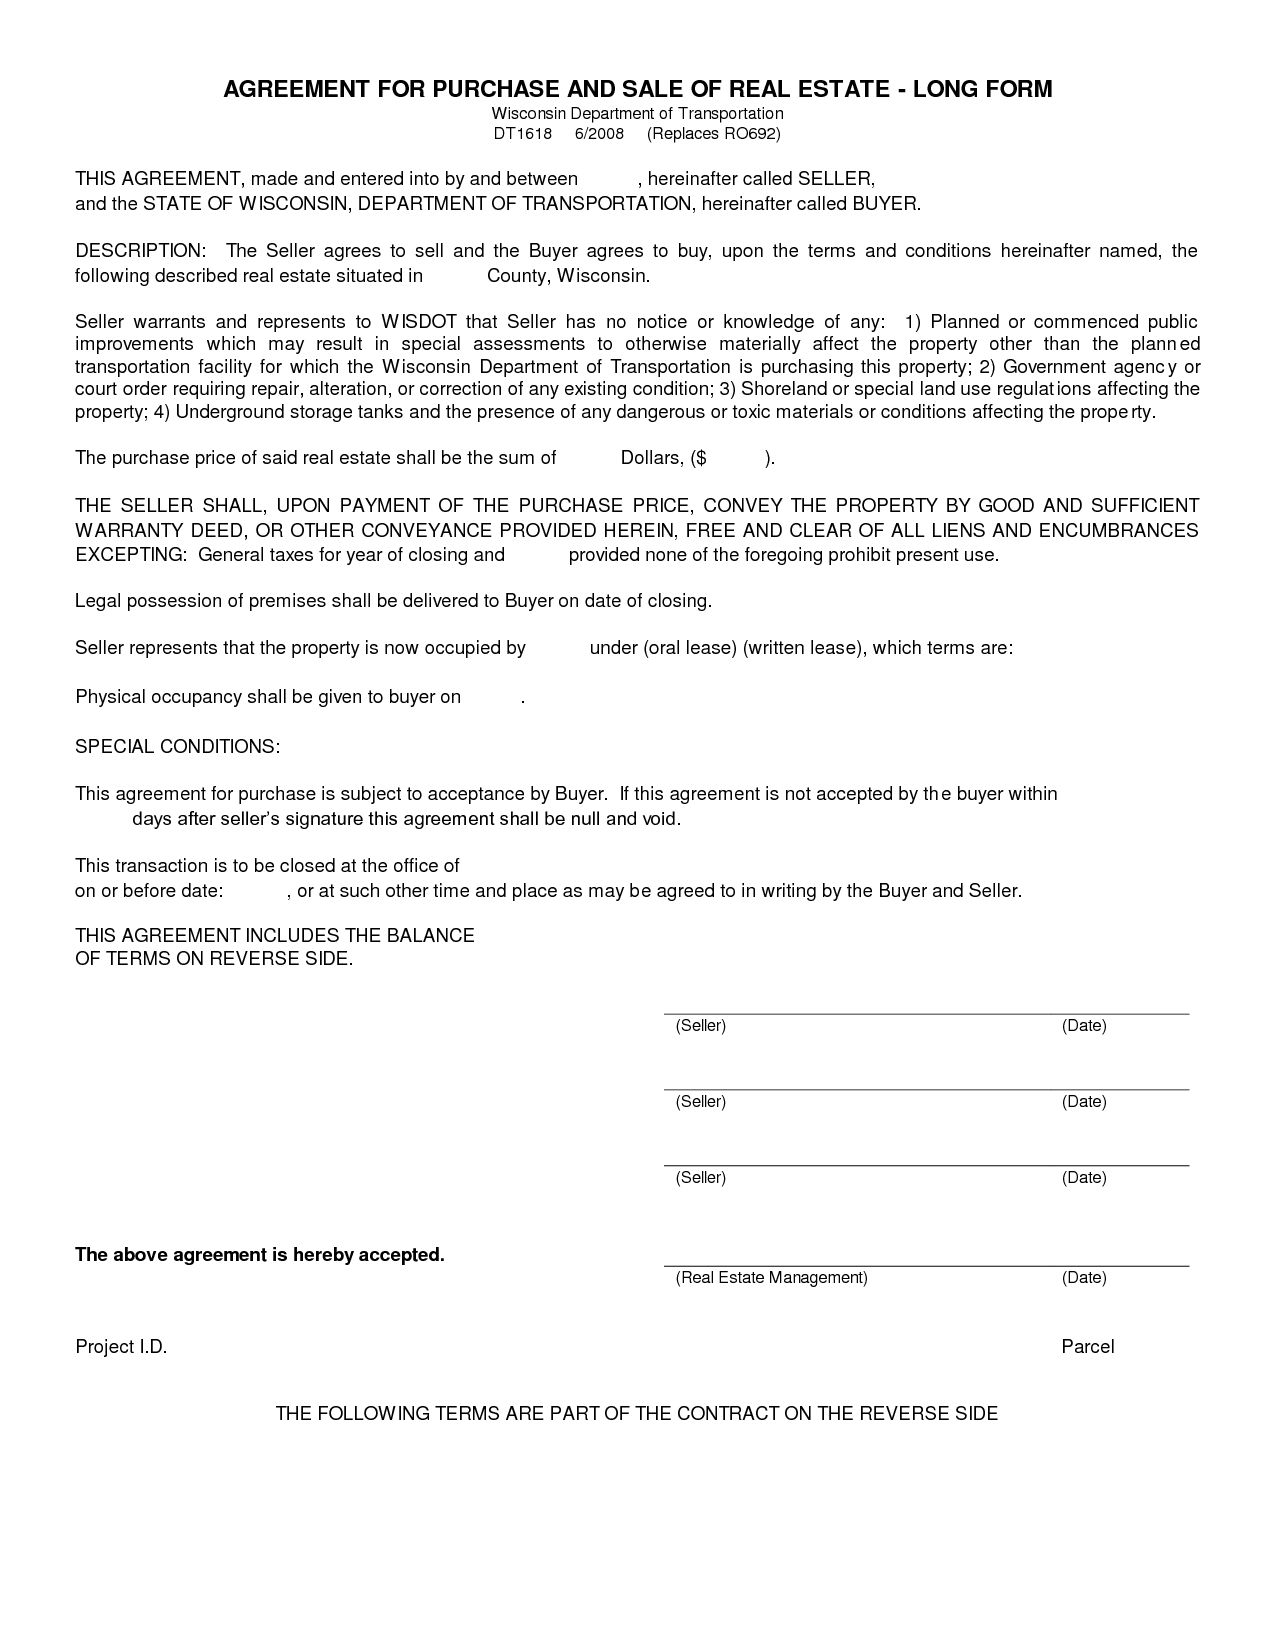 Free Blank Purchase Agreement Form Images  Agreement To Purchase For Free Business Purchase Agreement Template